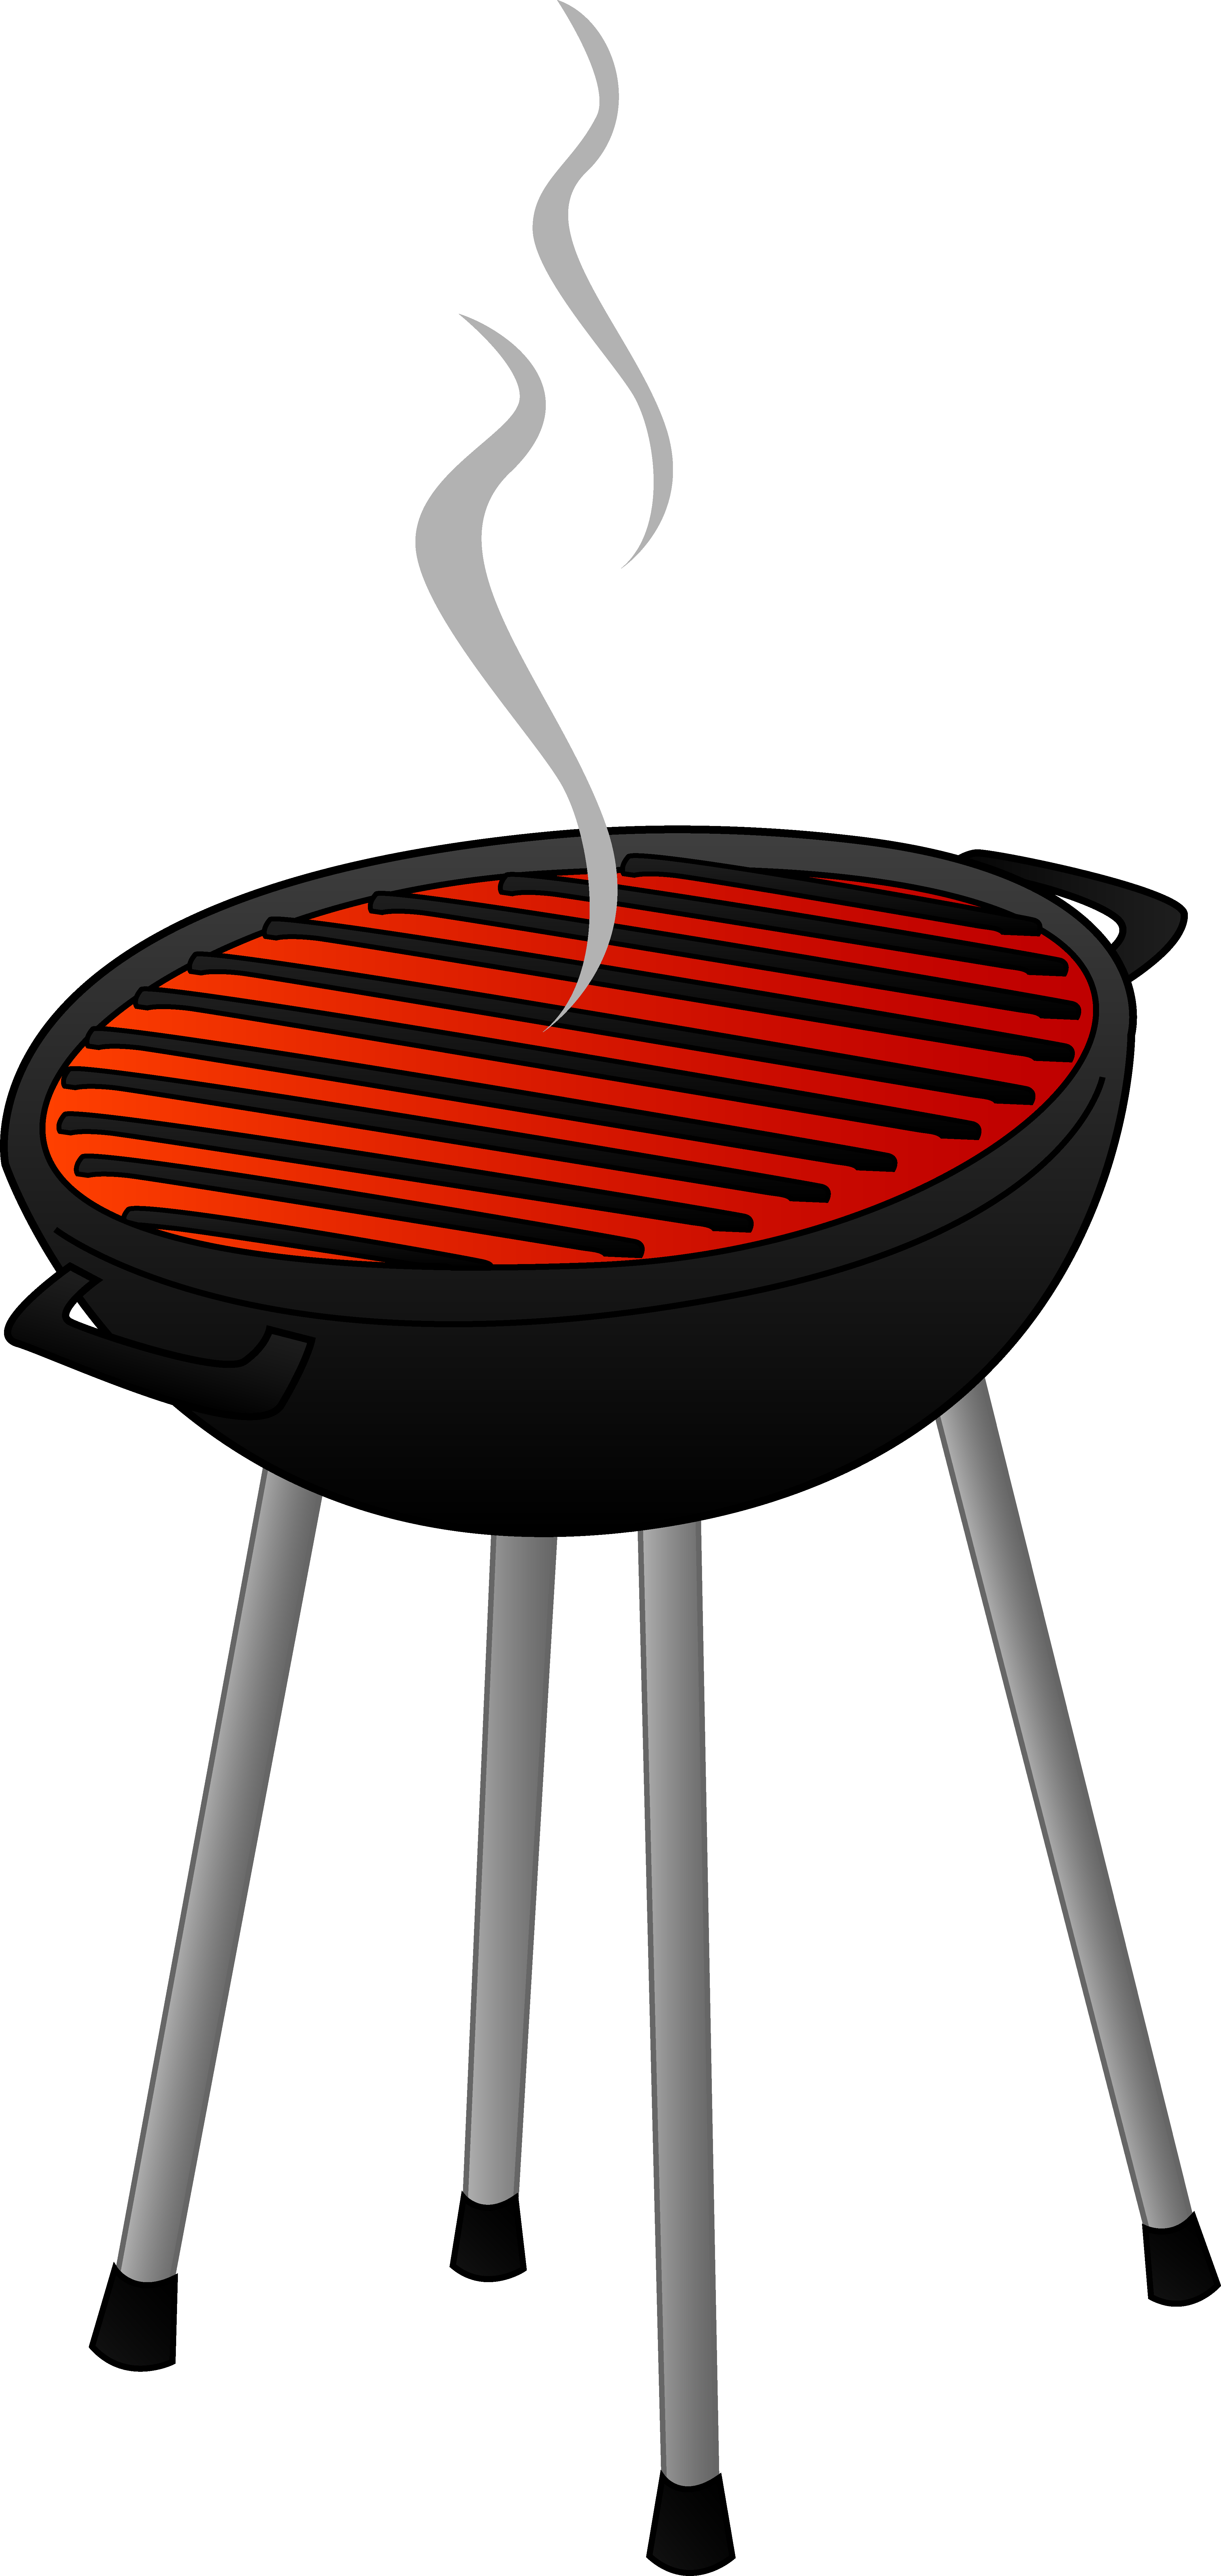 Grill Clip Art - Free PNG Grill